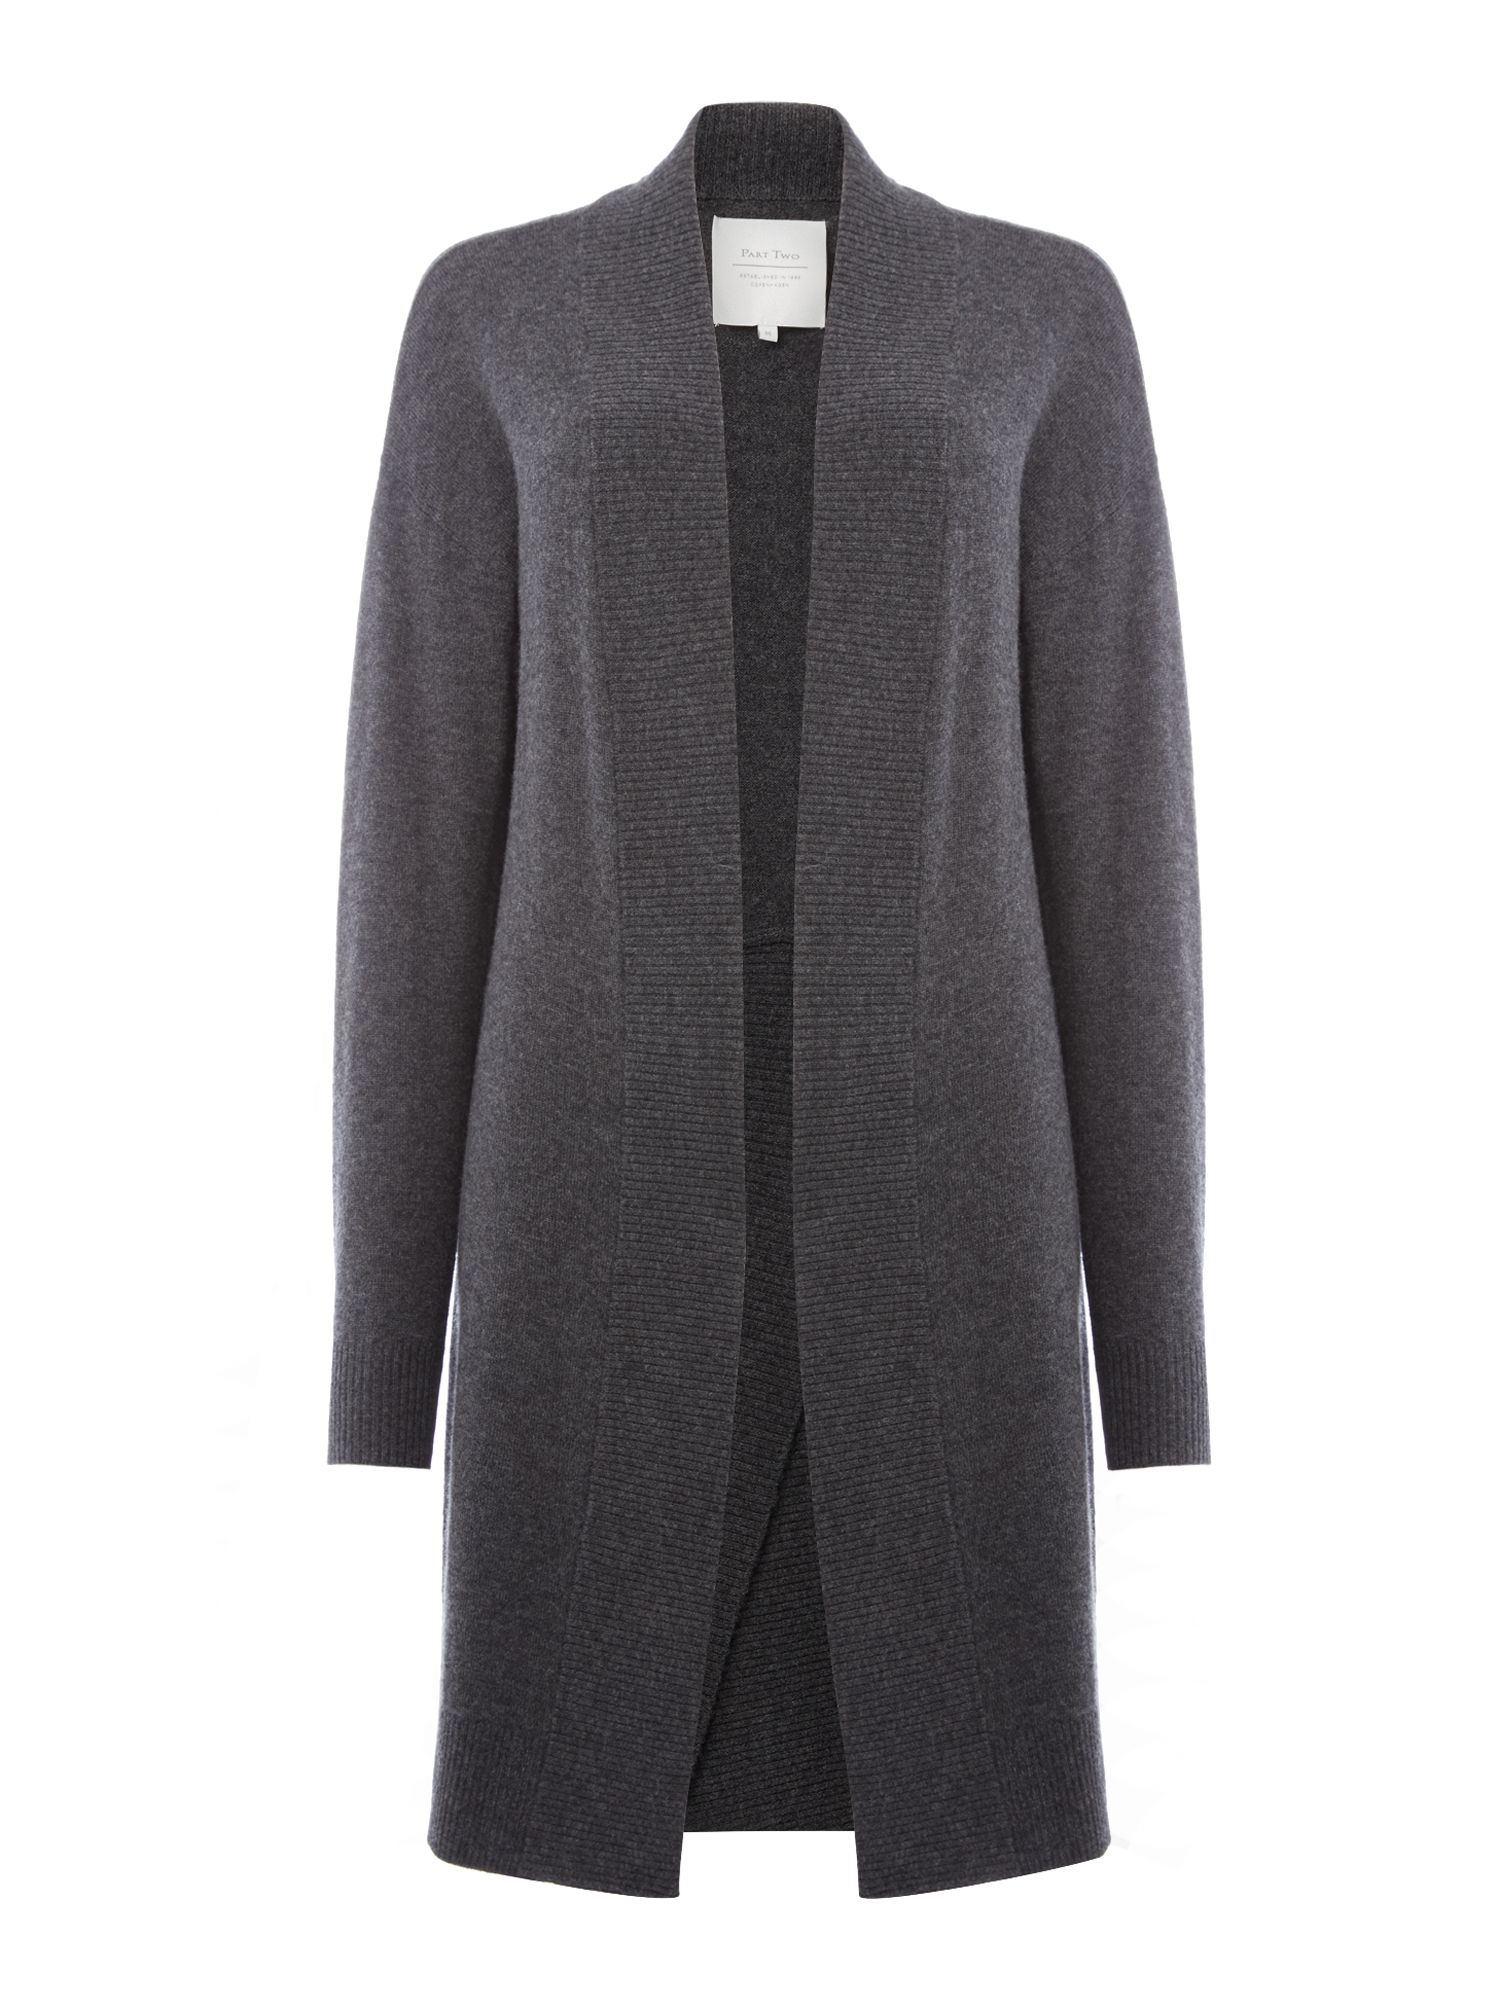 Part Two Part Two Simple yet stylish cardigan crafted from a soft c, Grey Marl